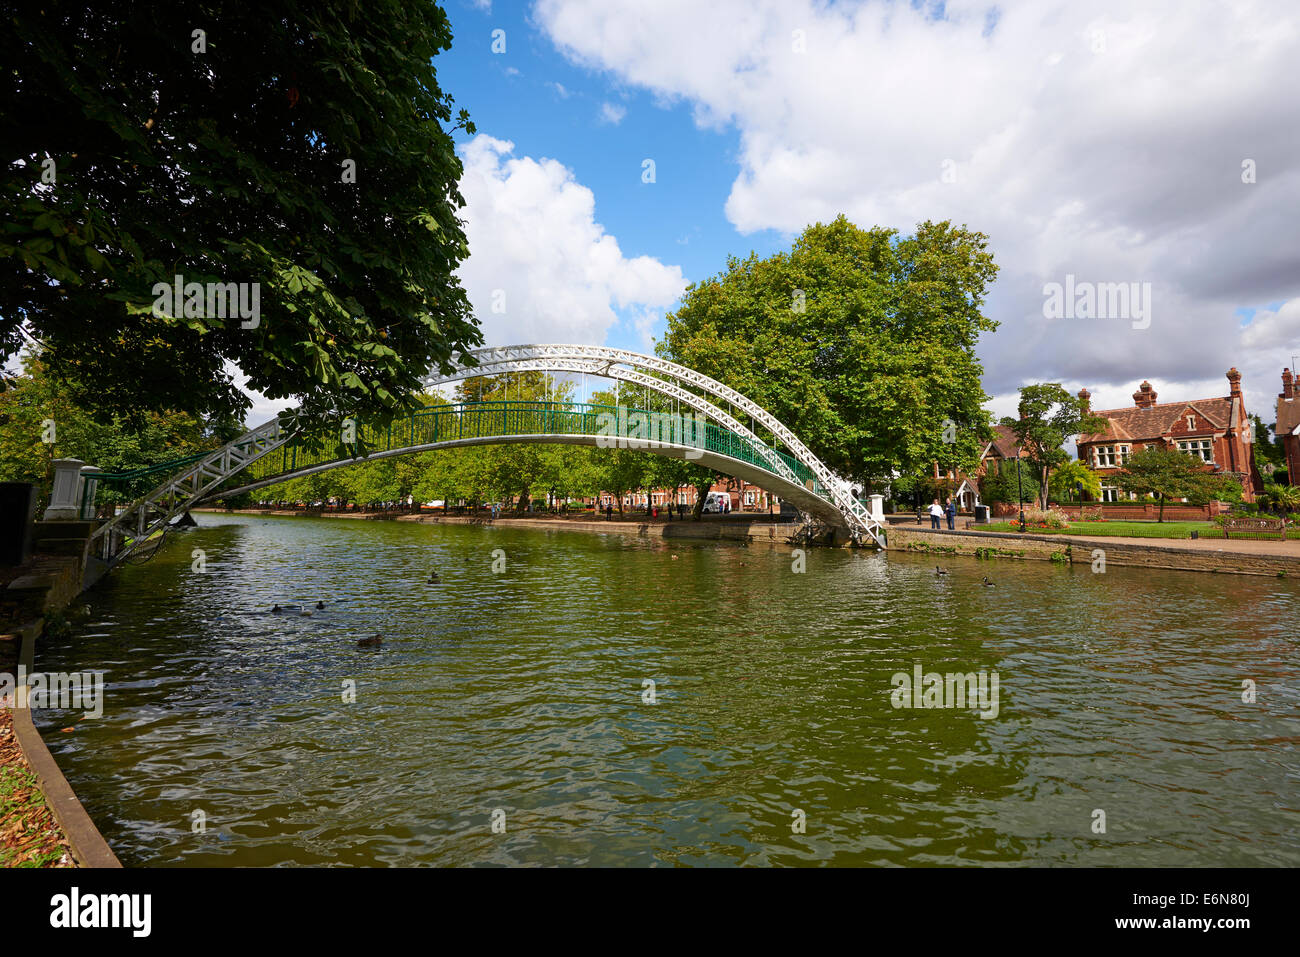 View Towards The Embankment With The Pedestrian Suspension Bridge Over The River Great Ouse To The Left Bedford - Stock Image